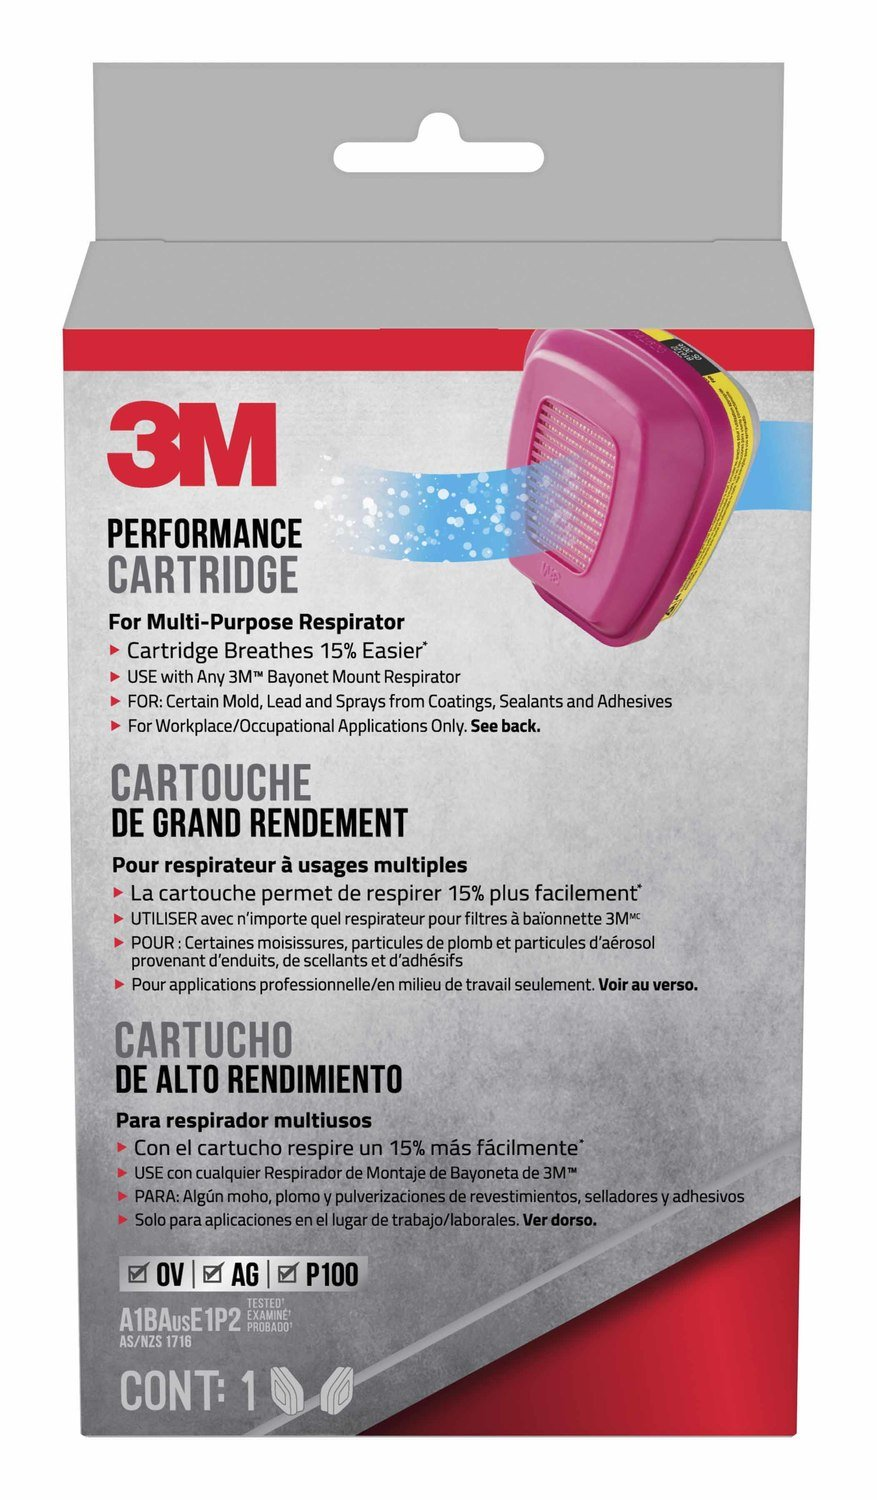 3M 60923HB1-C Replacement Cartridges for Professional Multi-Purpose Respirator (Packaging may vary) by 3M Safety (Image #1)